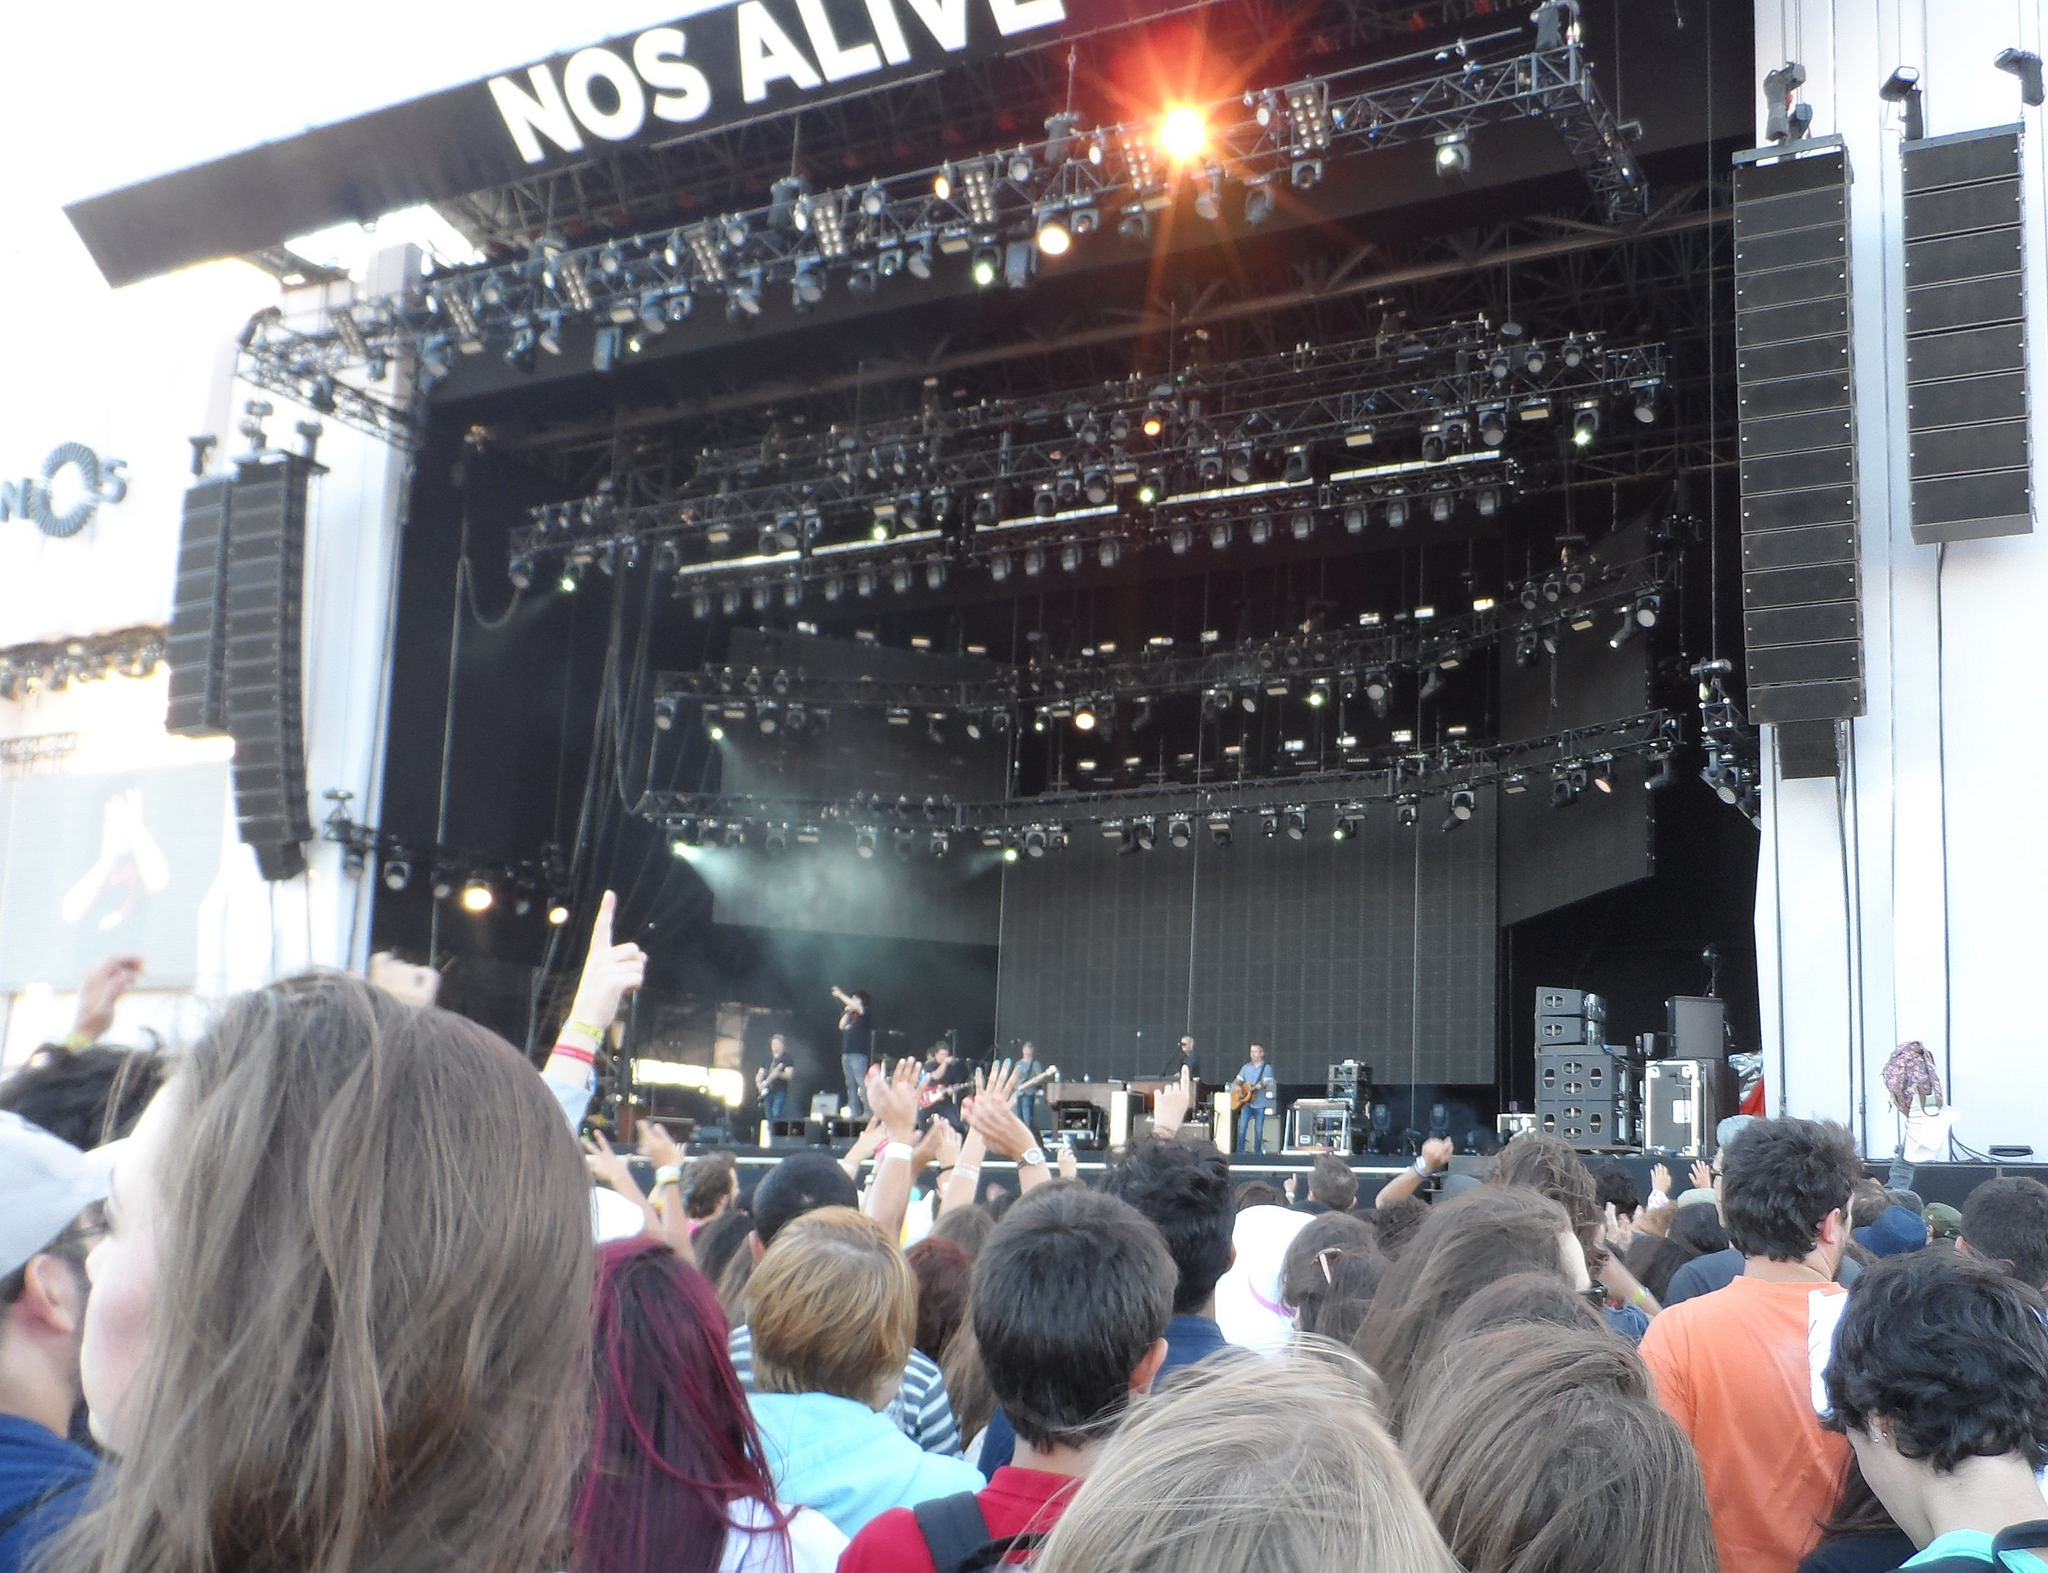 Counting Crows on stage at NOS Alive in 2015 © Chris / Flickr